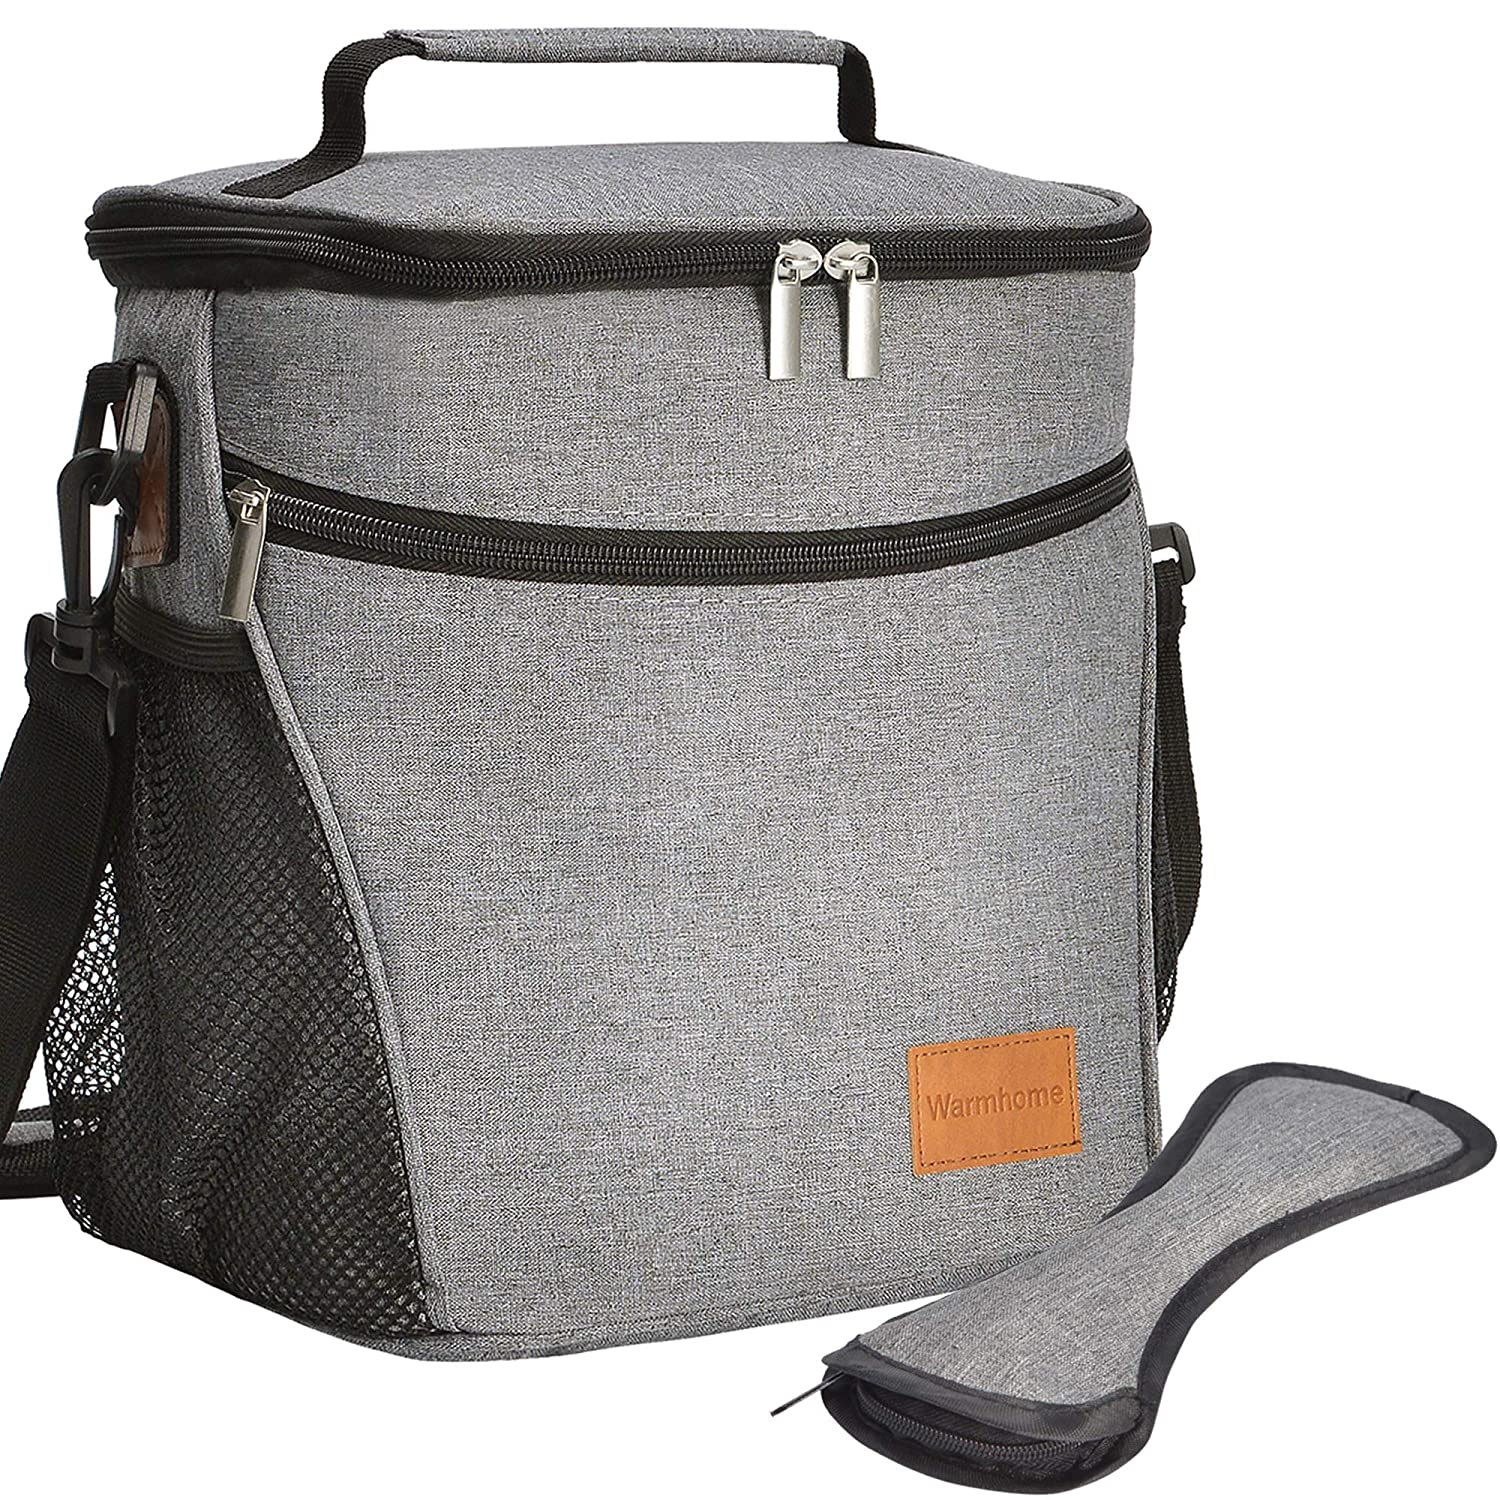 Lunch Bag Insulated Lunch Box for Men Women Large Lunch Tote Bag for Outdoor Travel Picnic